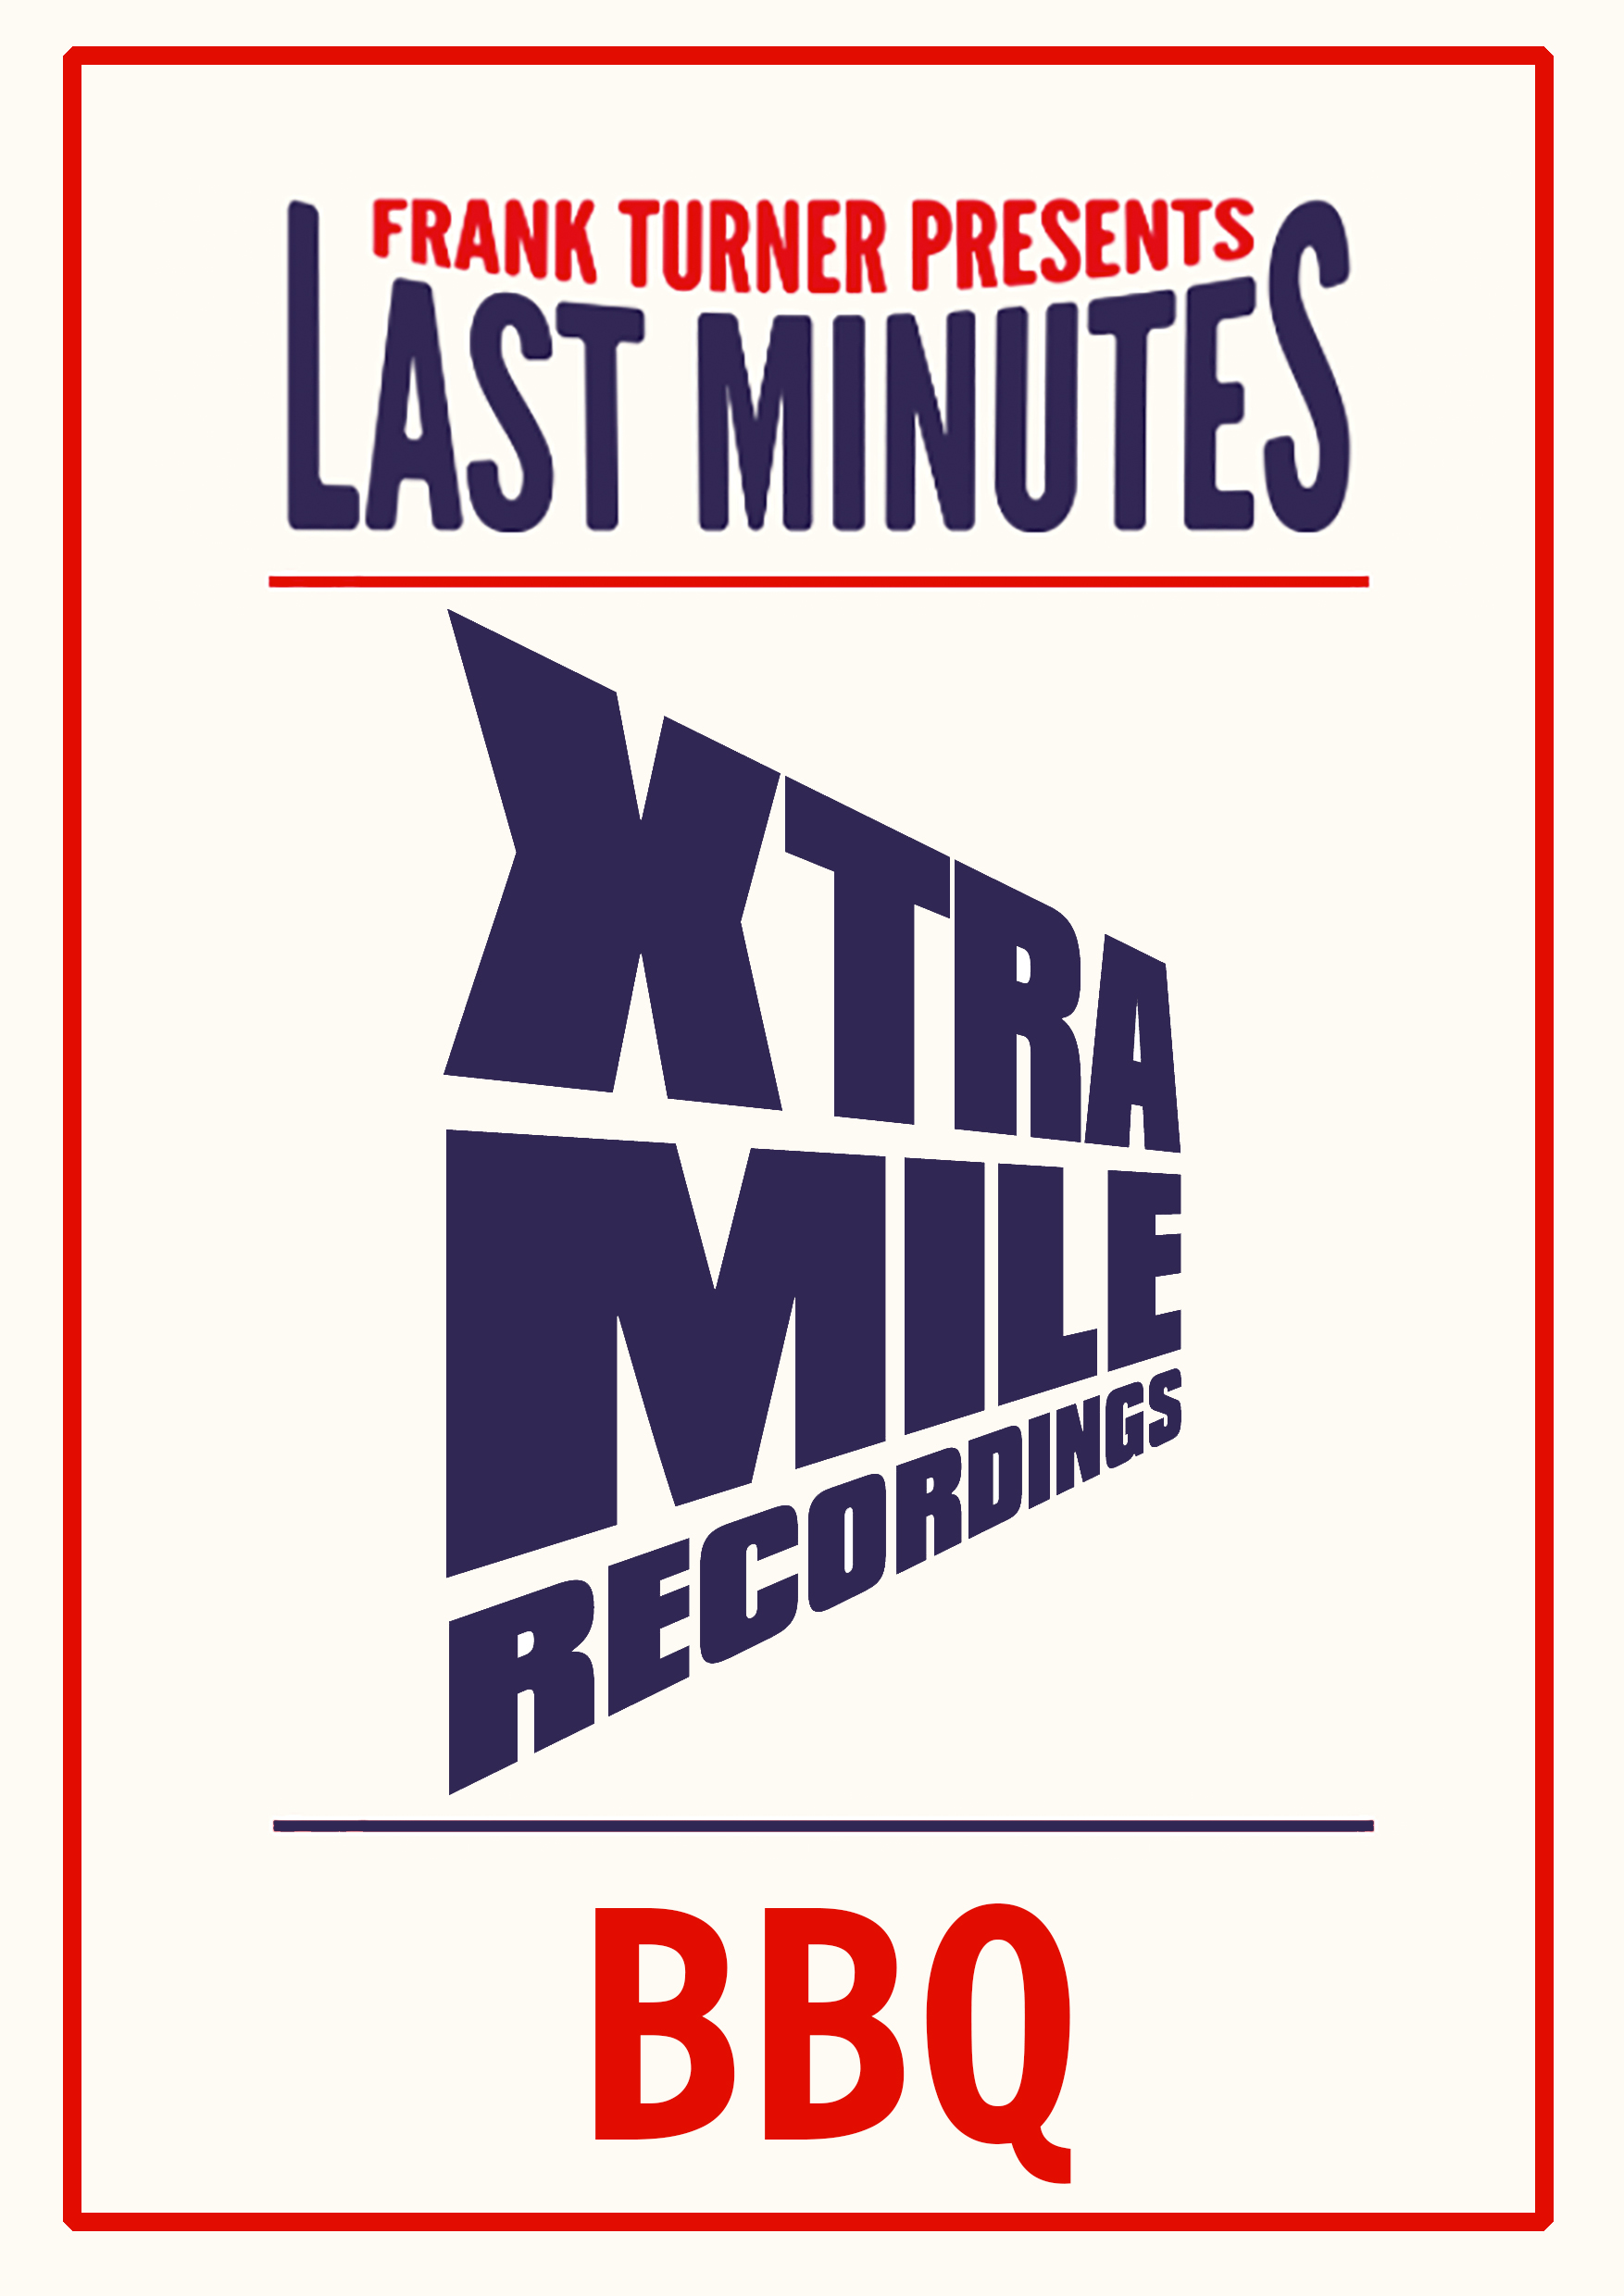 XTRA MILE BBQ